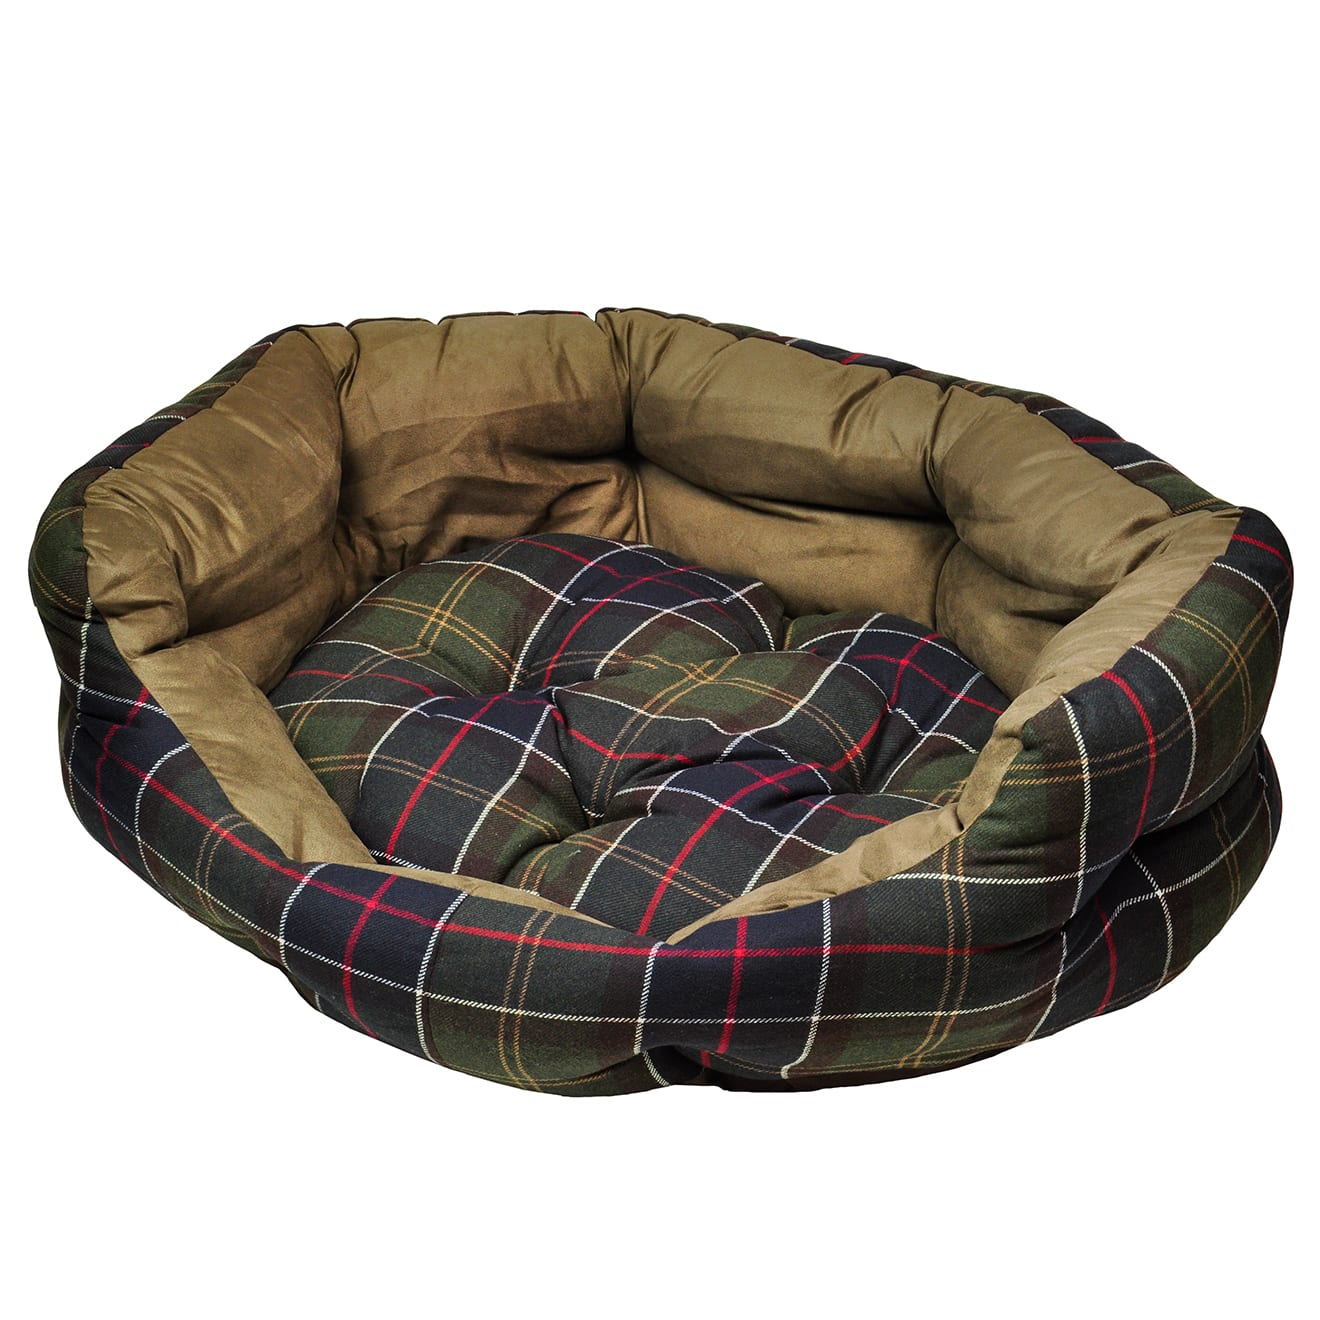 Barbour Luxury Dog Bed 35 Inches